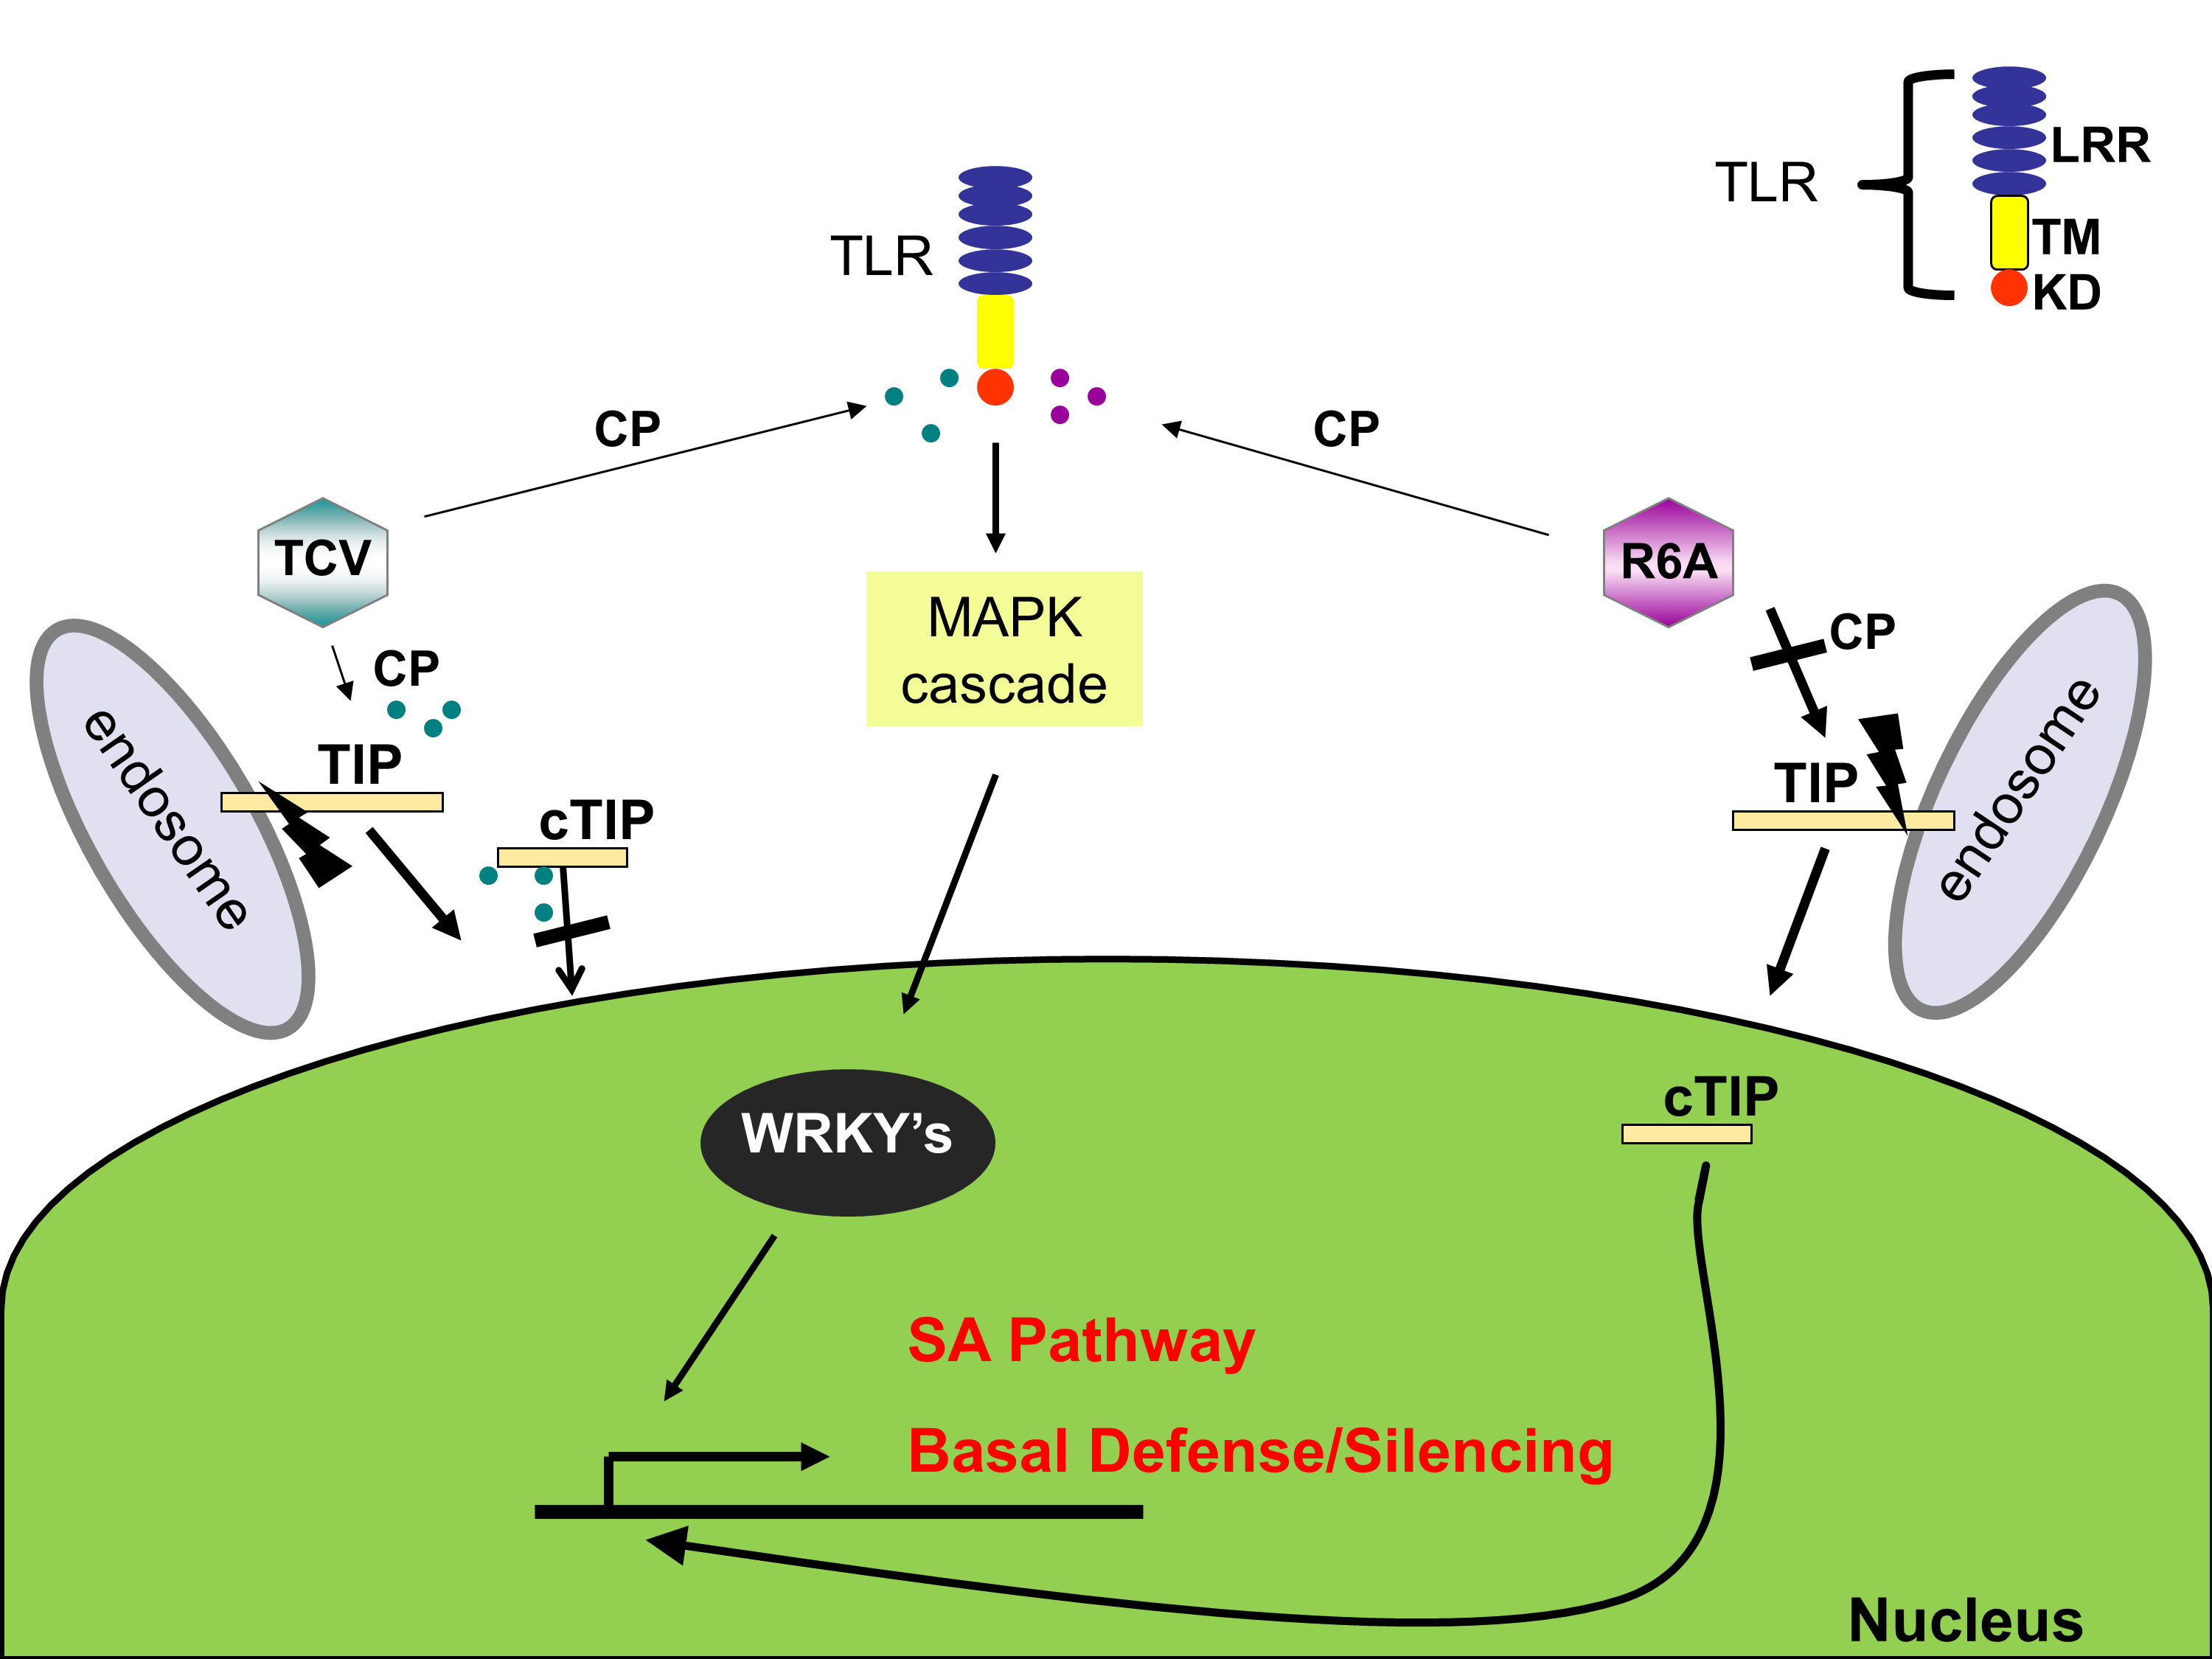 Model of the TIP-TCV CP interaction during TCV infection in the susceptible host Col-0. We propose that TCV CP is recognized by an uncharacterized toll-like receptor (TLR) that provokes SA defense signaling with a leucine rich repeat (LRR) domain for protein-protein interaction and a transmembrane domain (TM). The TLR kinase domain (KD) signaling leads to a MAPK cascade and enhanced basal defense. Infection by wildtype TCV results in the interaction of the CP with TIP that alters the rate of migration into the nucleus leading to the basal defense genes not being induced. Infection by the TCV mutant, R6A, is unable to repress the basal defense response because it can't interact with TIP. This difference in basal defense regulation in the susceptible host gives a selective advantage to TCV early in infection.